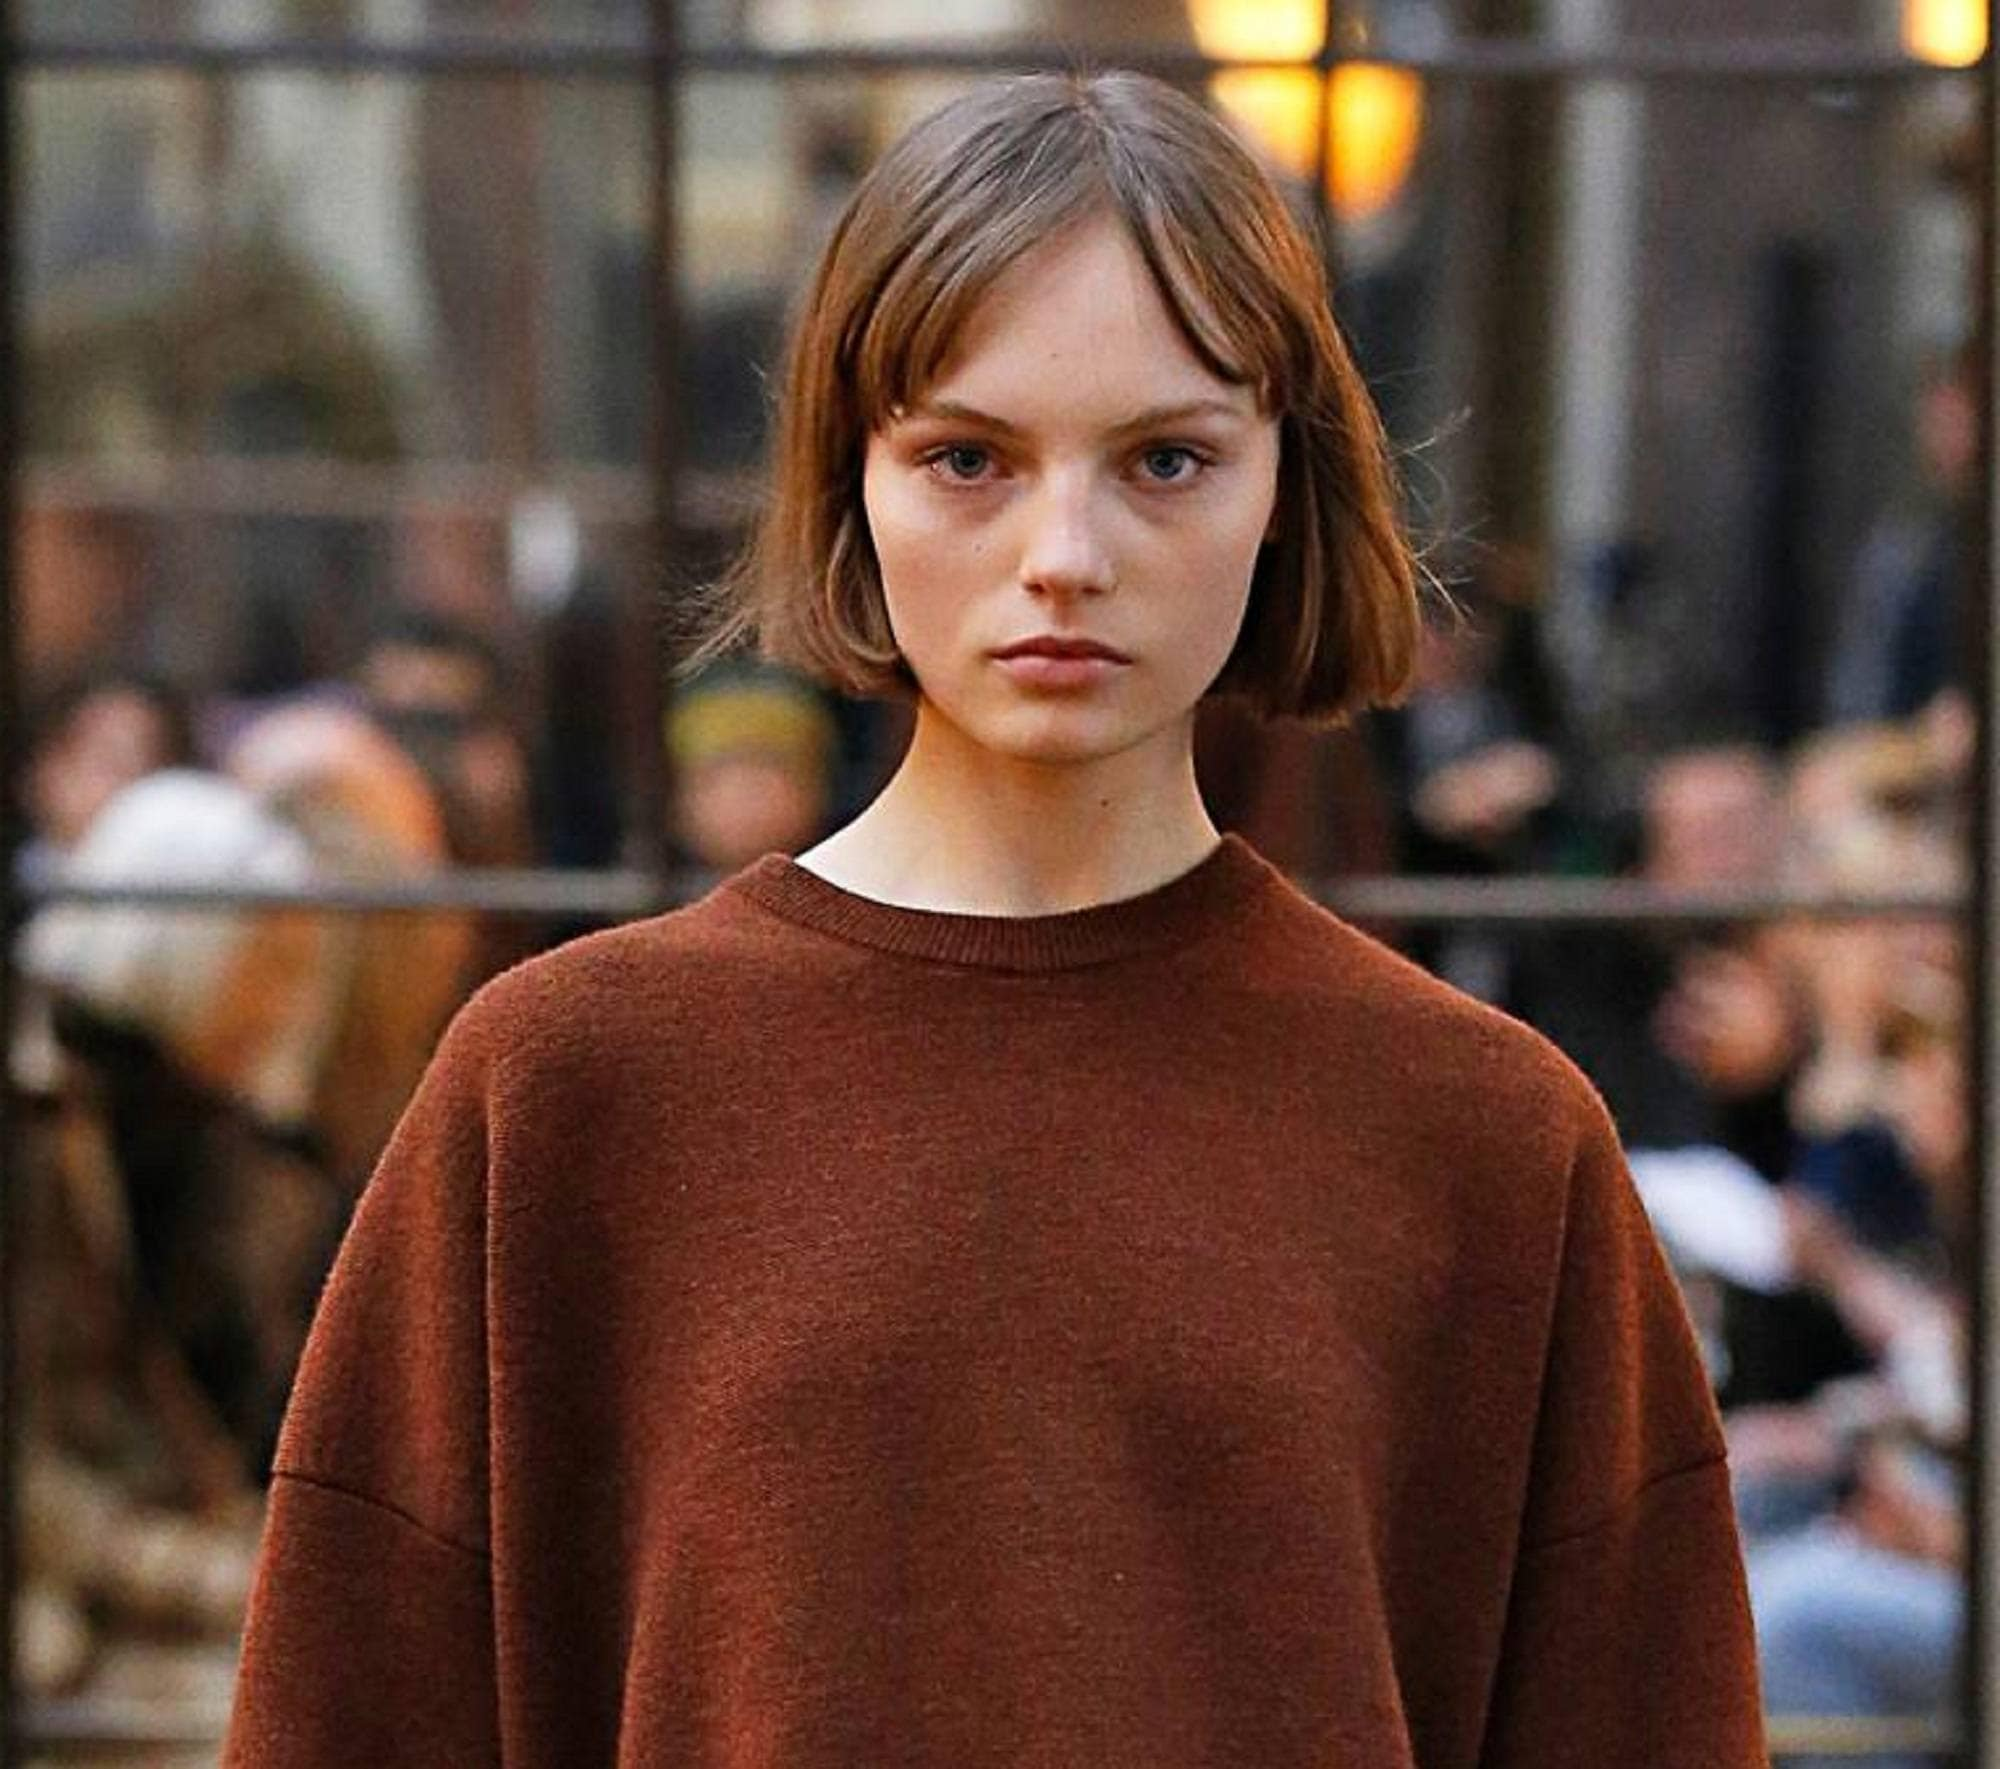 Chin length hairstyles: Runway shot of a woman wearing brown shirt with short brown center parted chin length bob